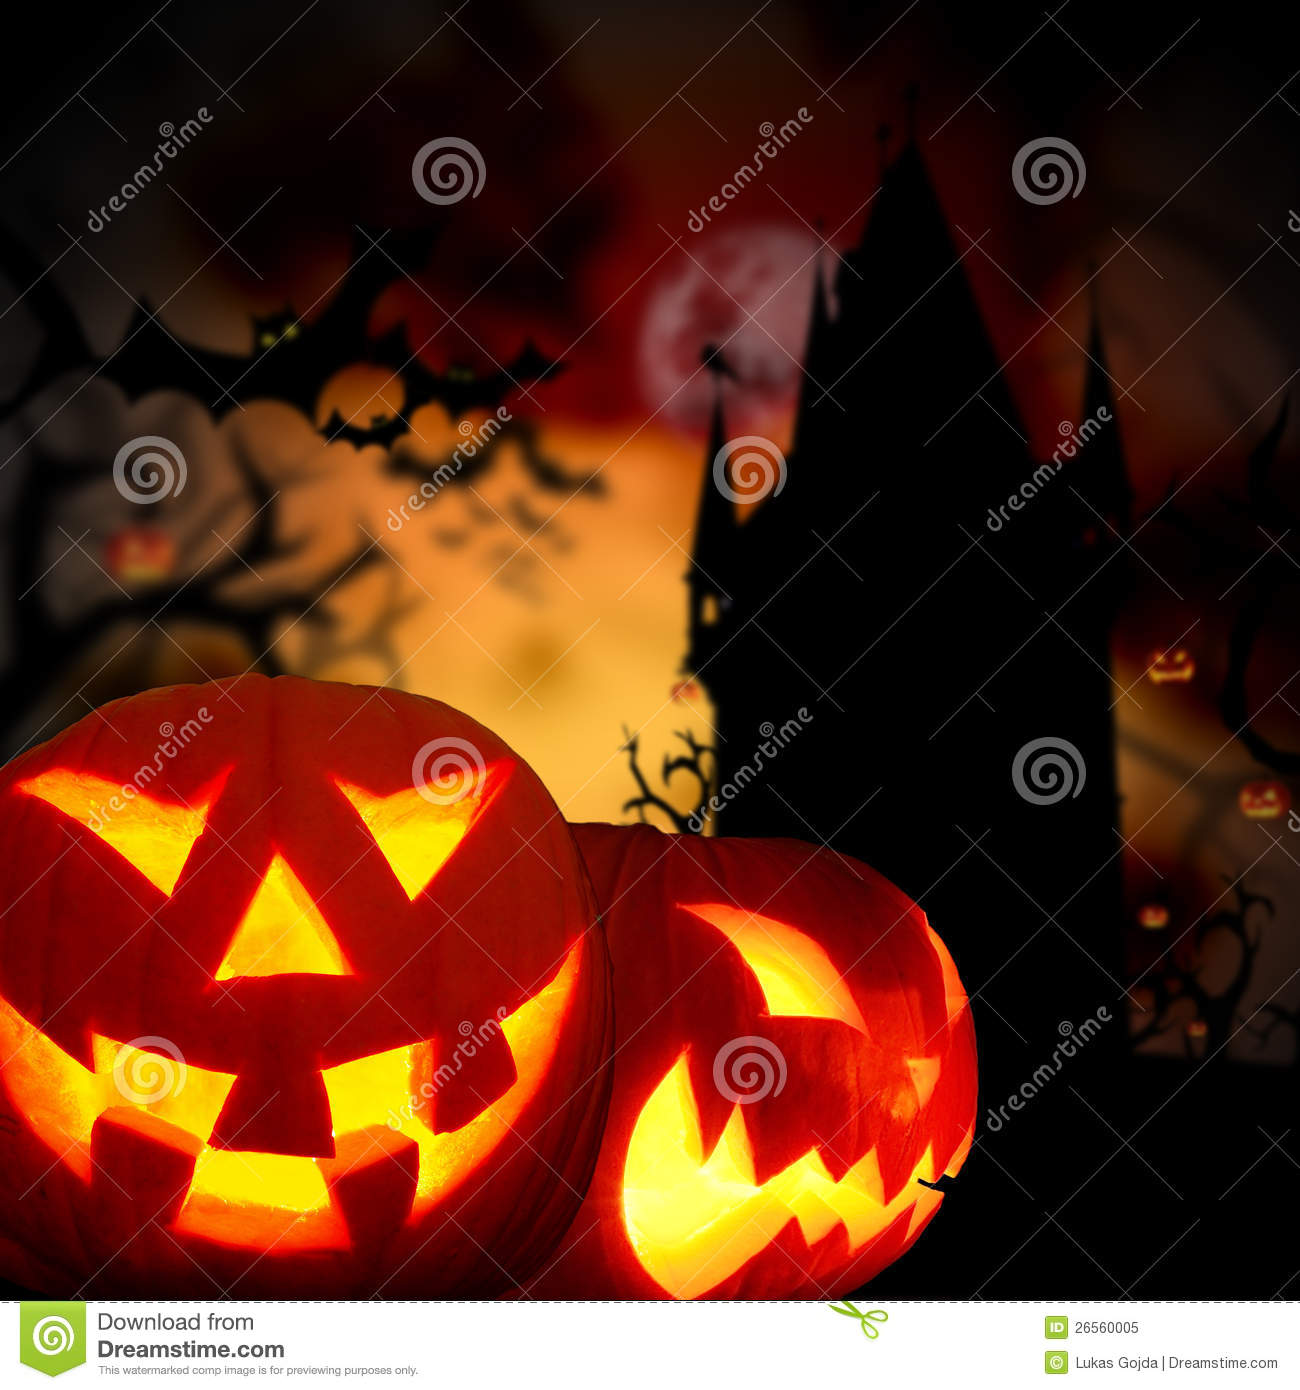 Images of glowing pumpkins in a dark scary forest with old tower